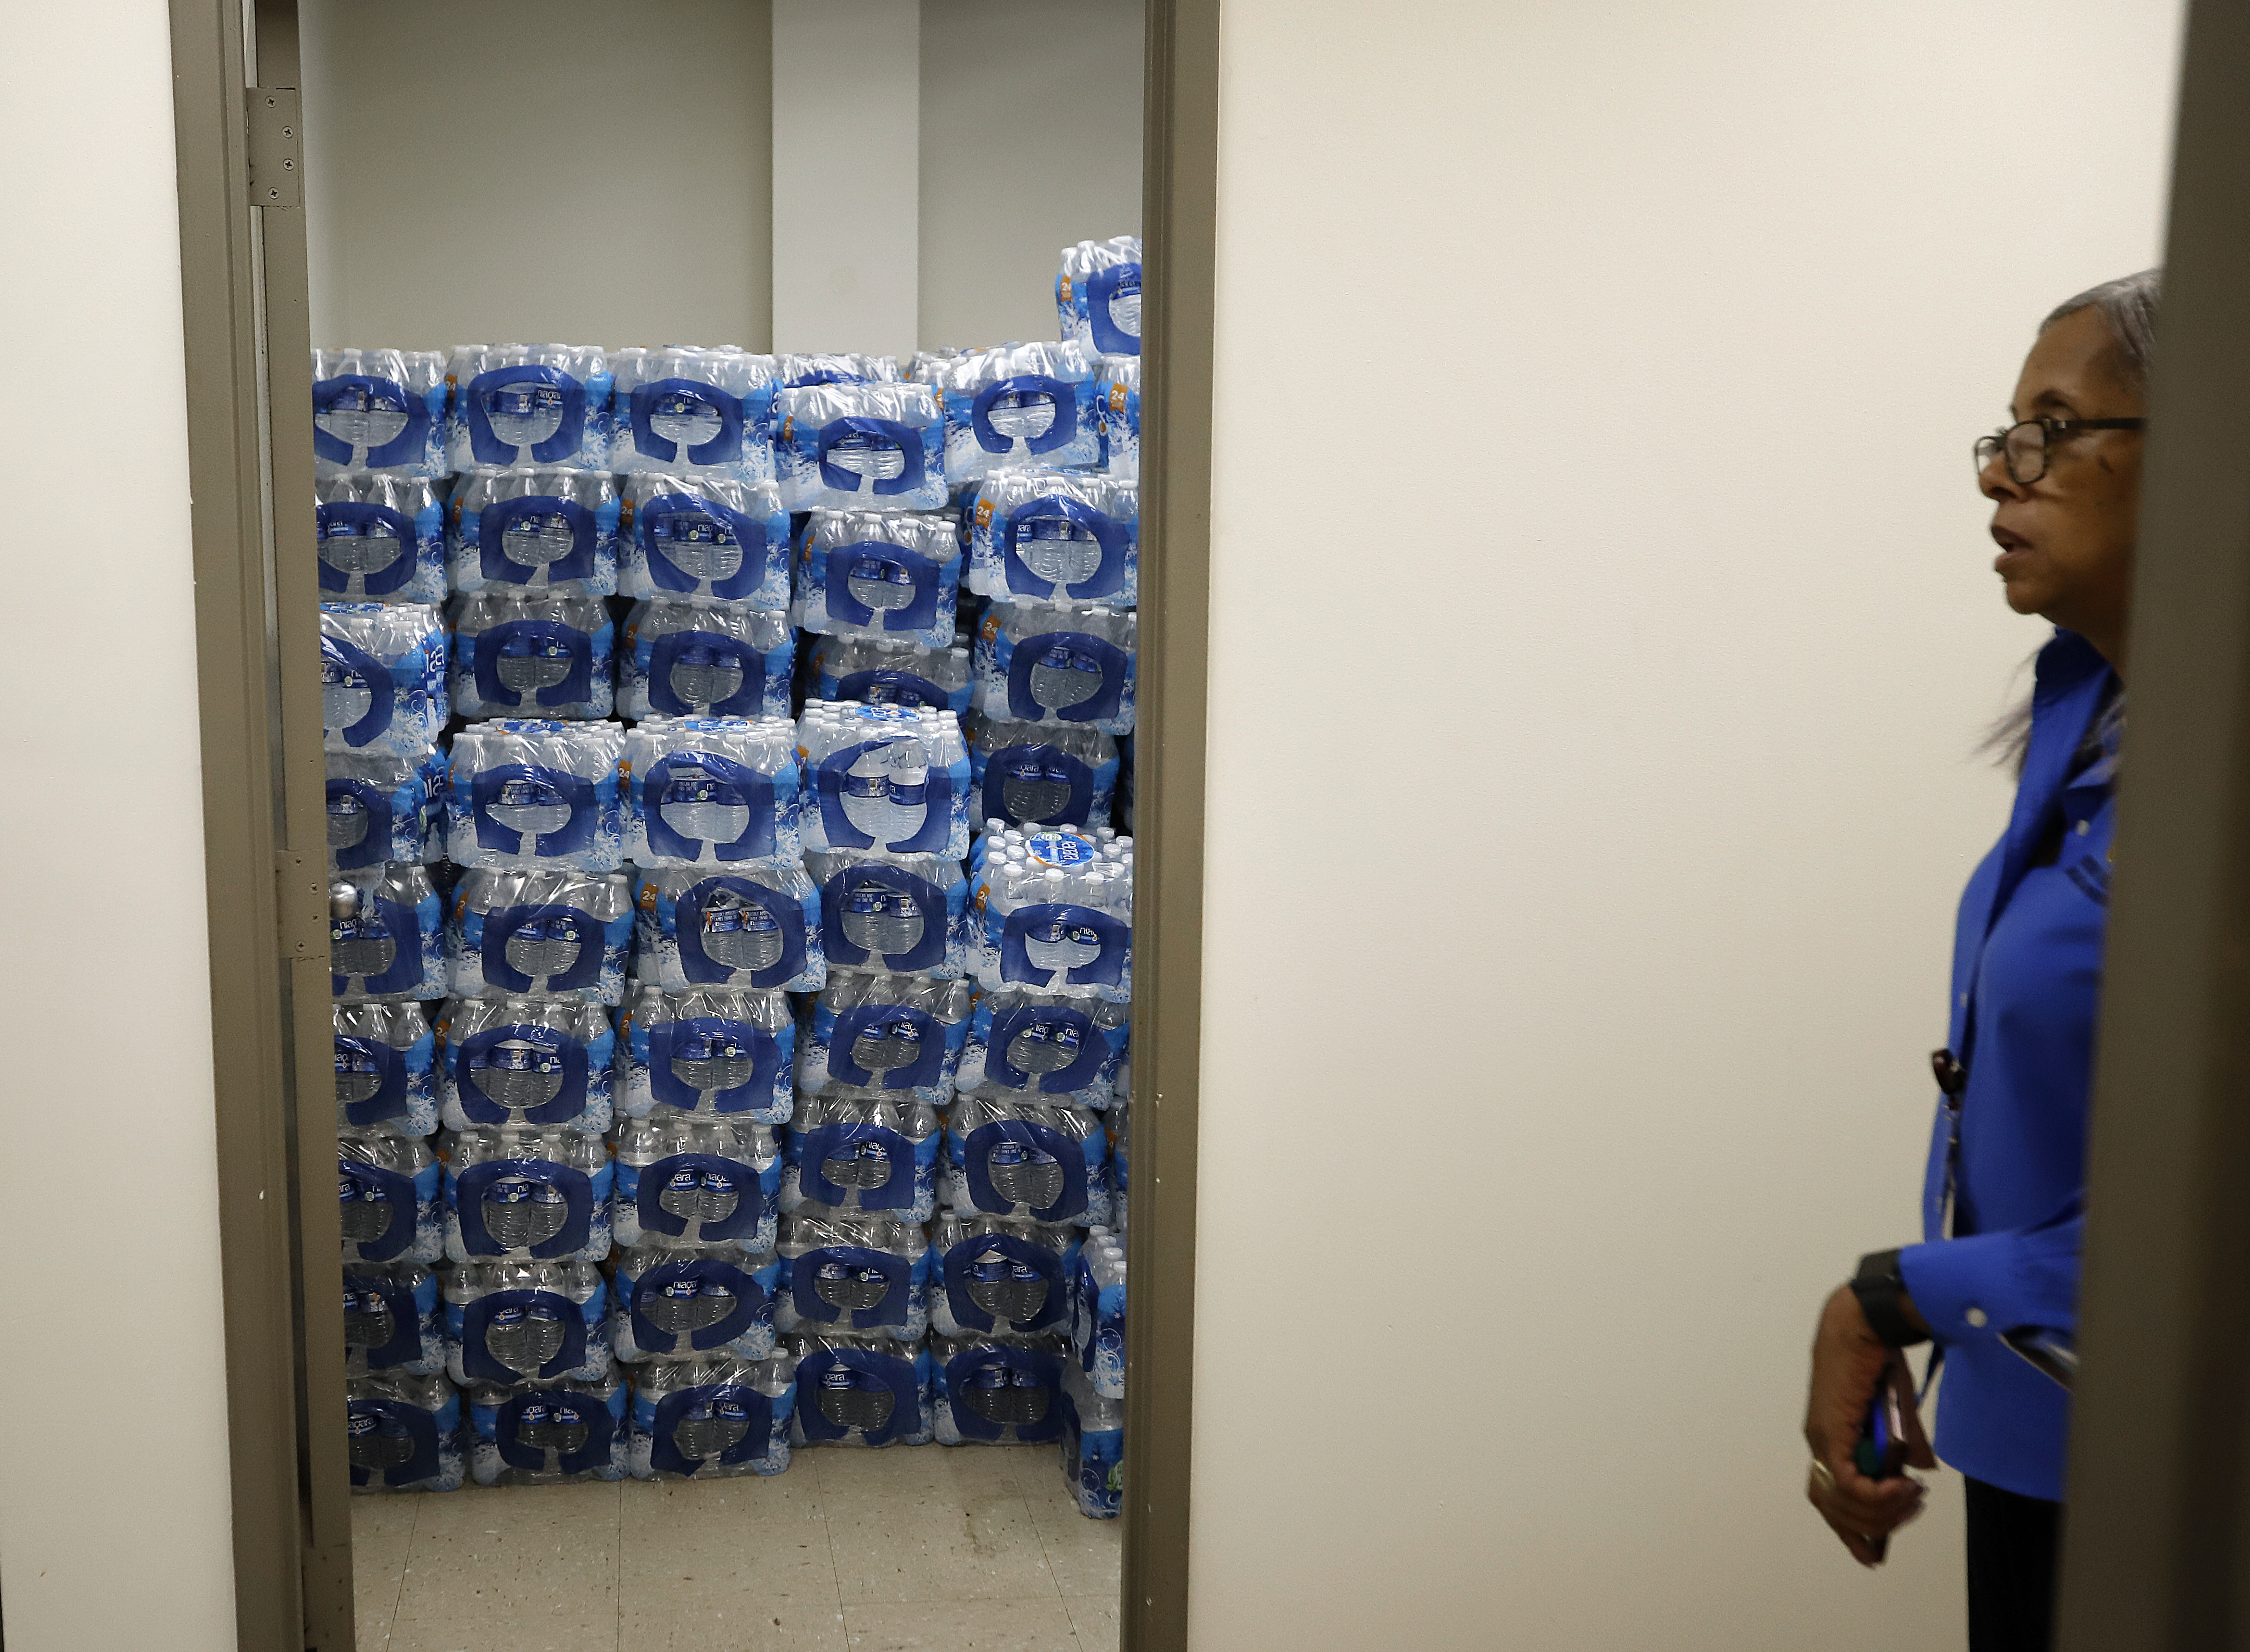 Water is stacked in several rooms scattered around the Newark Health Department, which is acting as a distribution point for fresh water for residents affected by the city's ongoing water crisis due to lead contamination in some tap water.